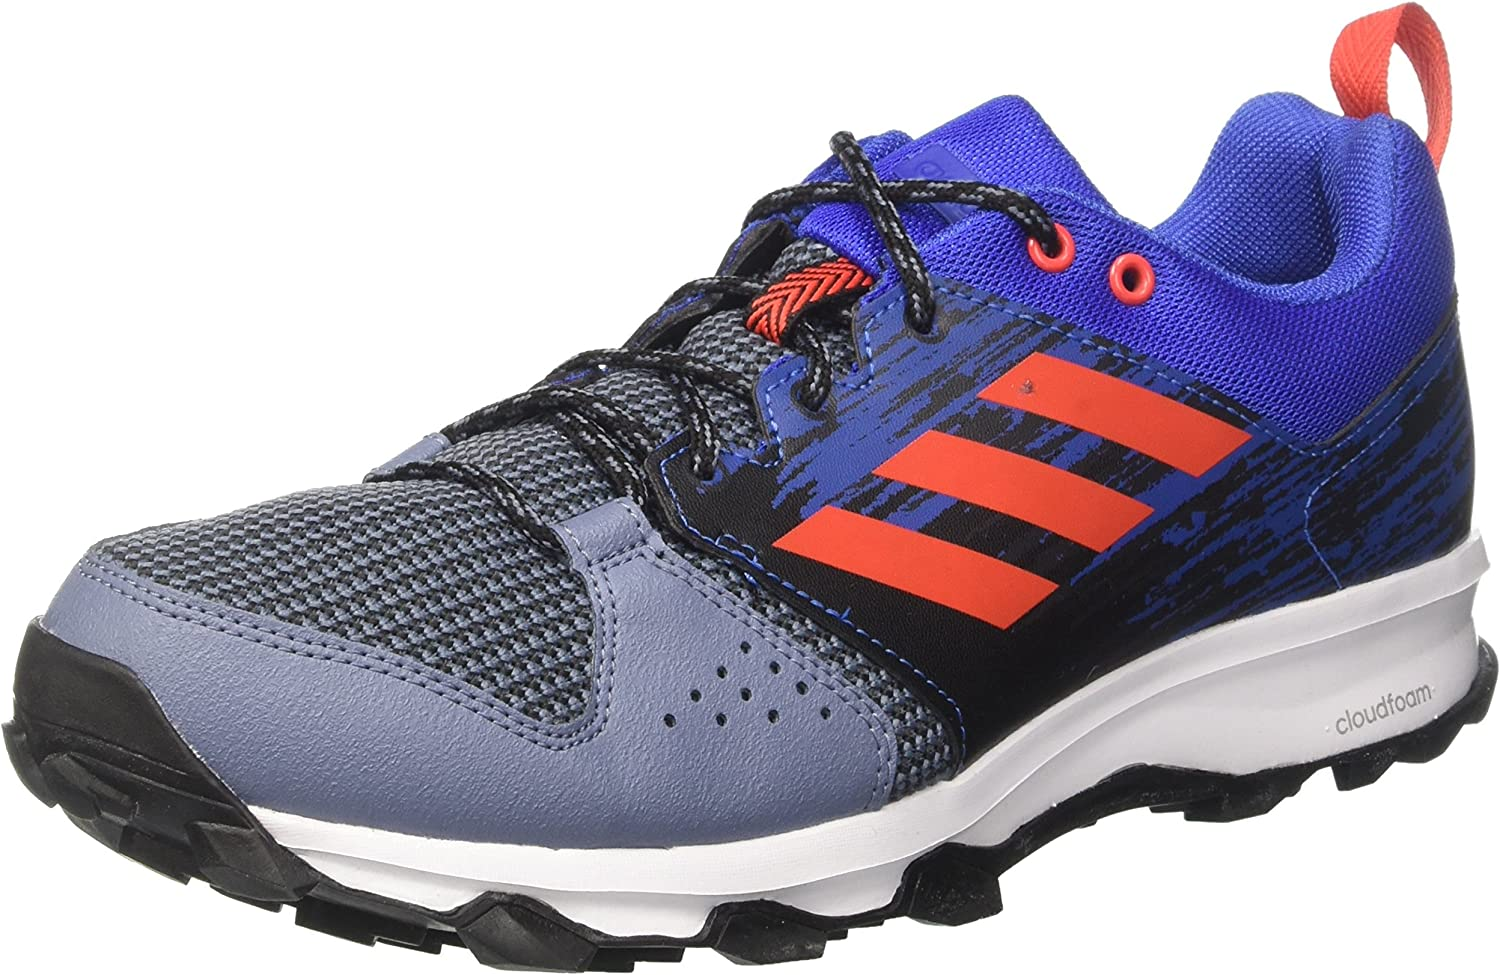 Caballero amable canción Implementar  adidas Men's Galaxy Trail Training Shoes, Blue (Raw Steel S18/hi-res Red  S18/hi-res Blue S18 Raw Steel S18/hi-res Red S18/hi-res Blue S18), 14.5 UK:  Amazon.co.uk: Shoes & Bags